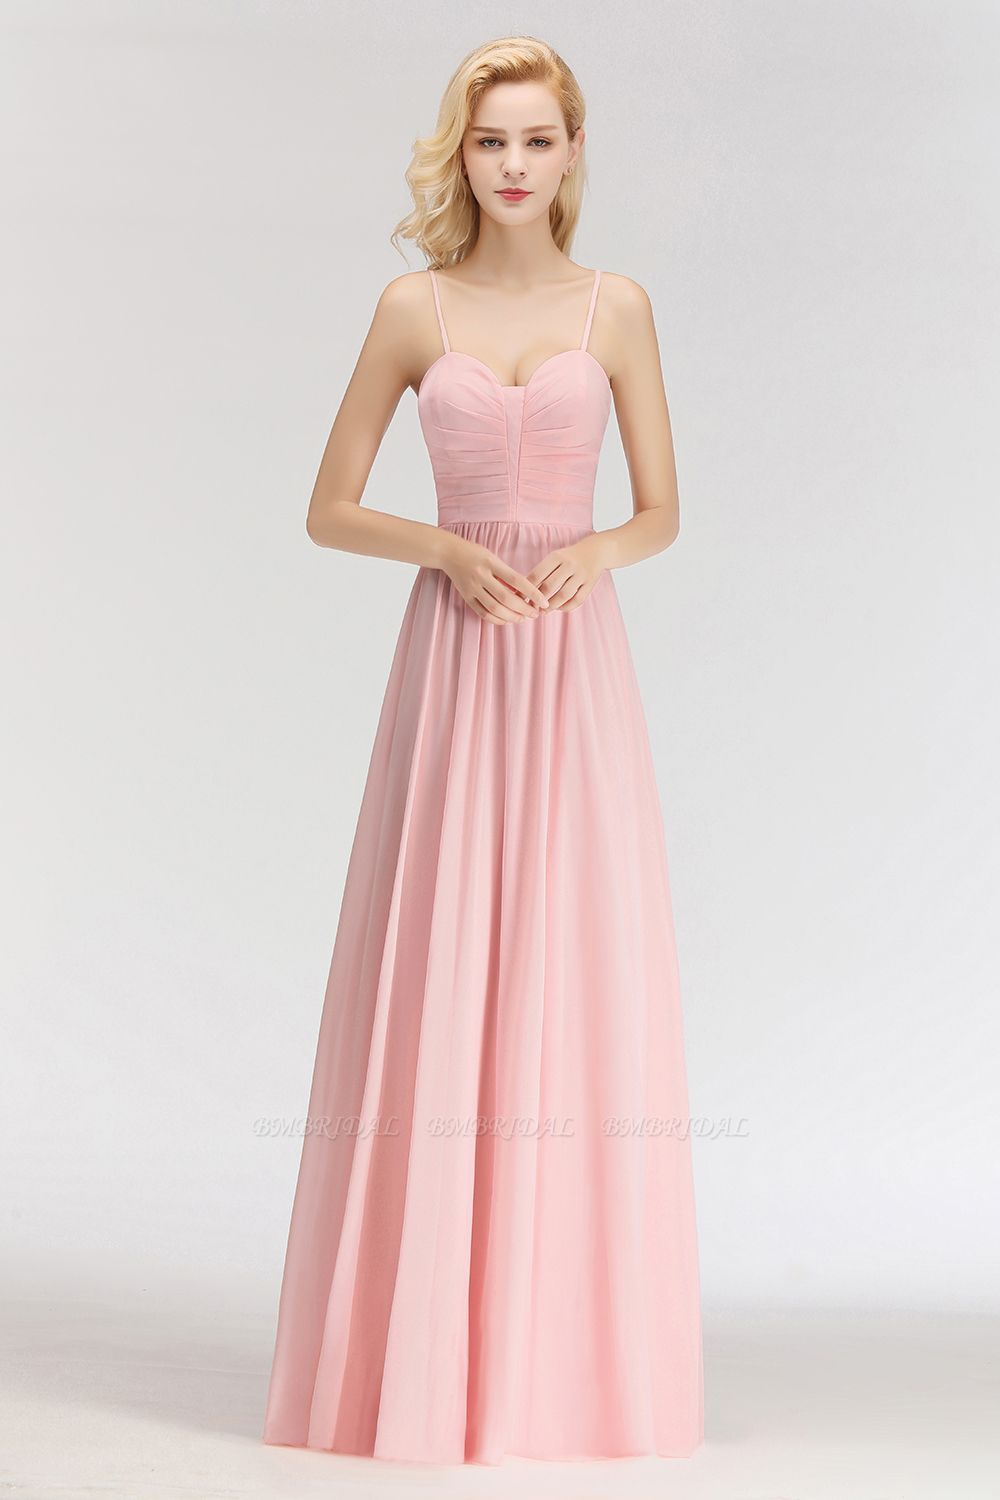 BMbridal Chiffon Spaghetti-Straps Sleeveless Affordable Bridesmaid Dress Online